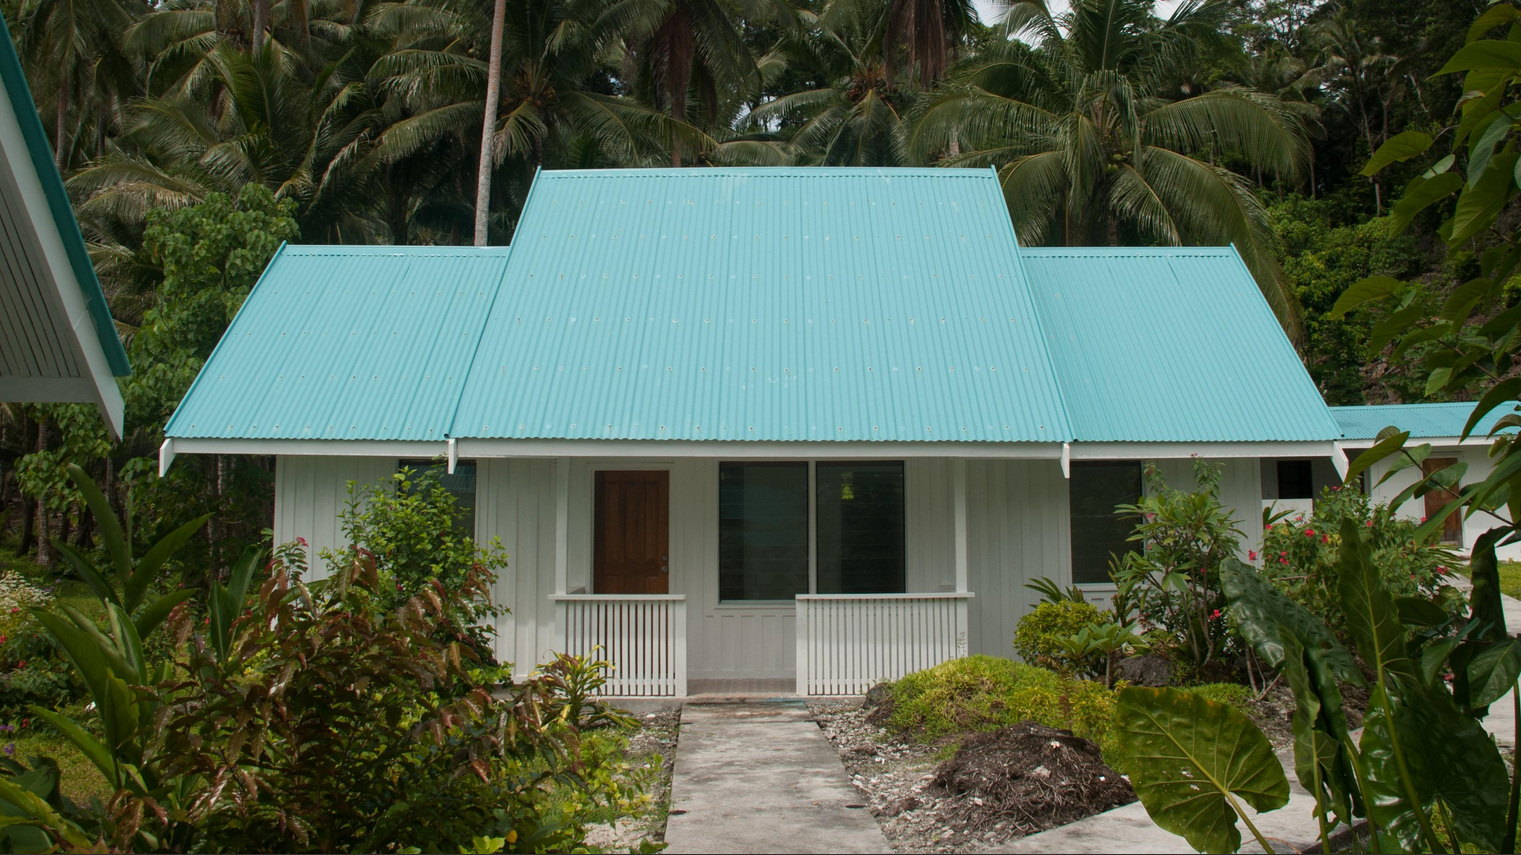 Family Bungalow - 2 bedrooms with adjoining bathroom and seperate sitting area. Bedrooms have 1 double bed in each room (3 available).